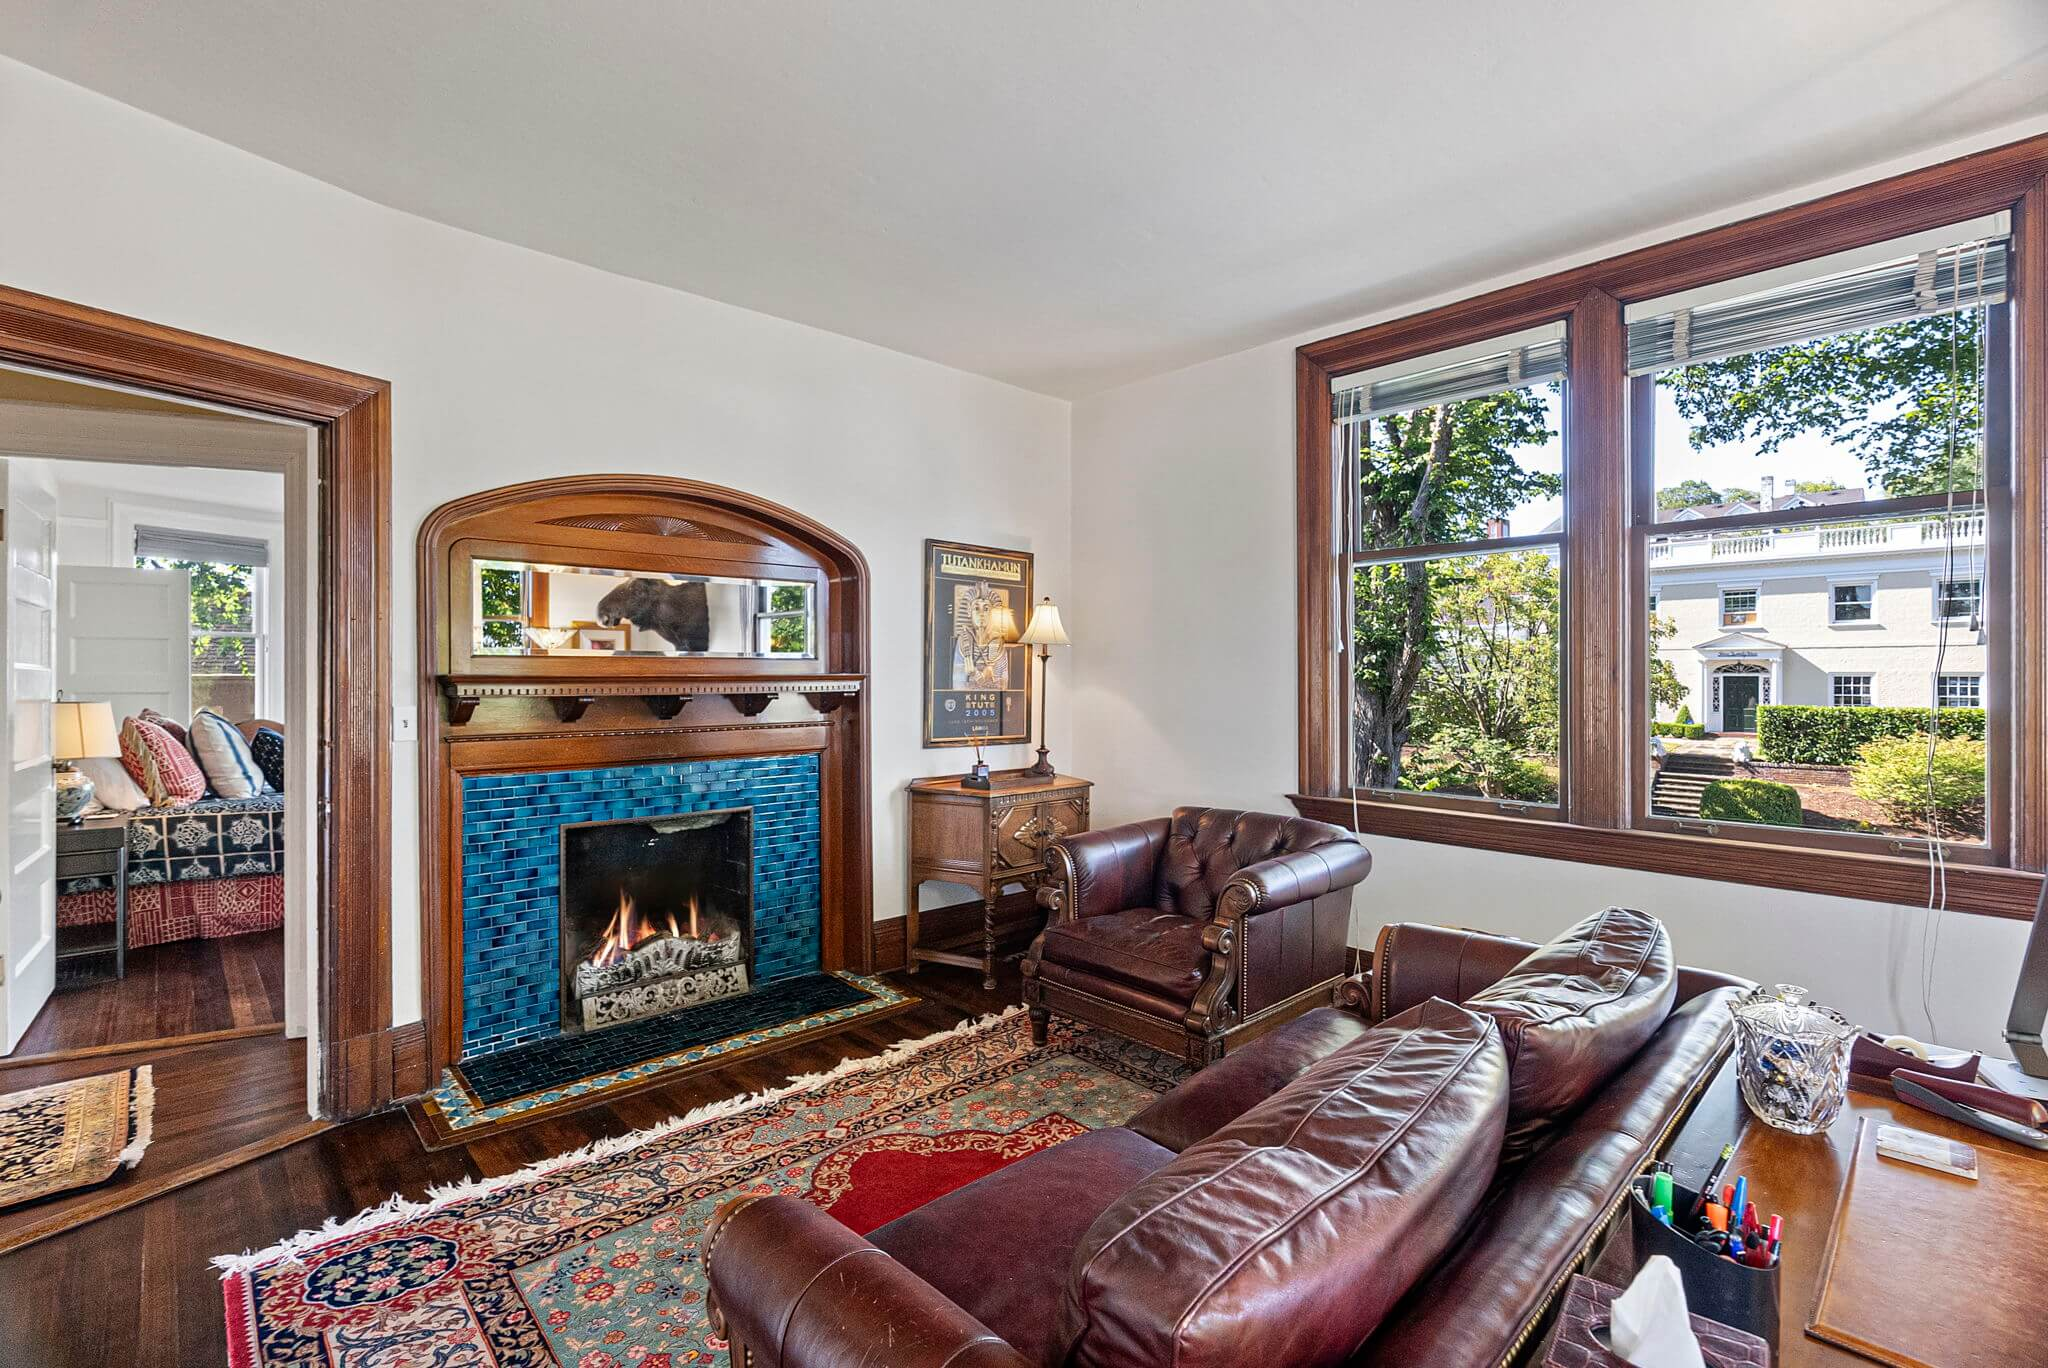 Bedroom #2 is currently used as an office and features a fireplace with original tile surround